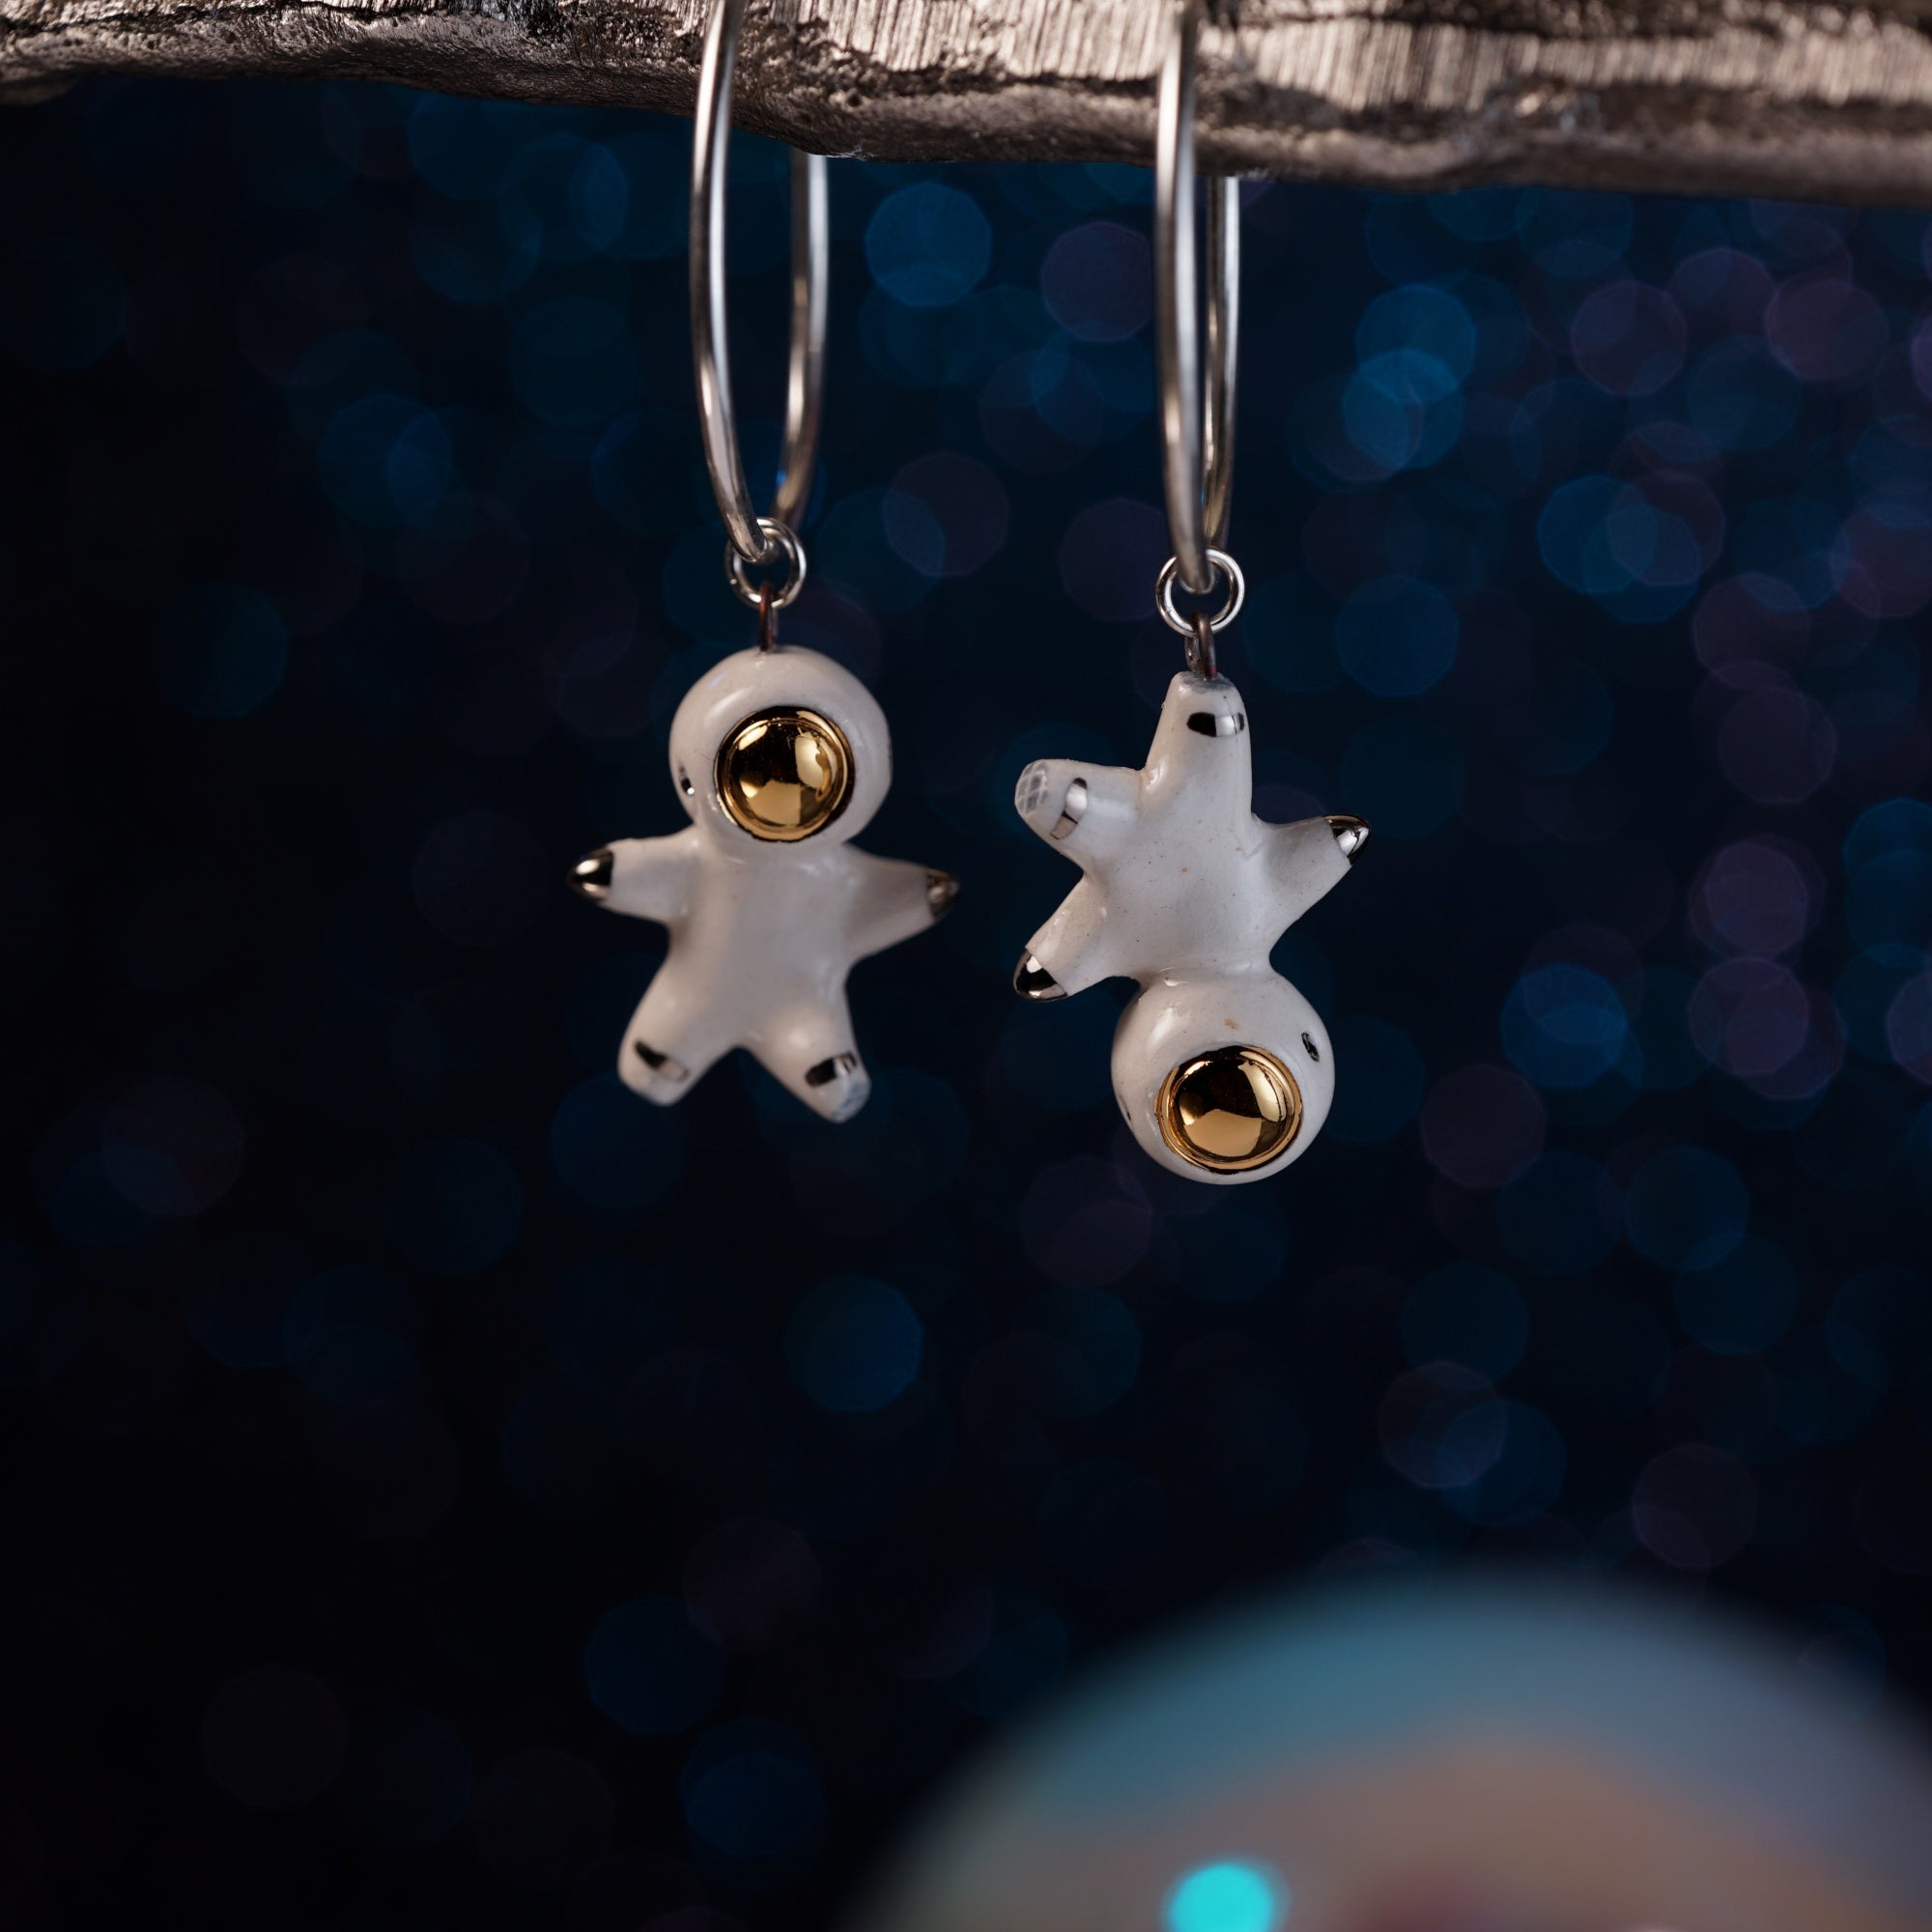 Floating Astronaut Earrings